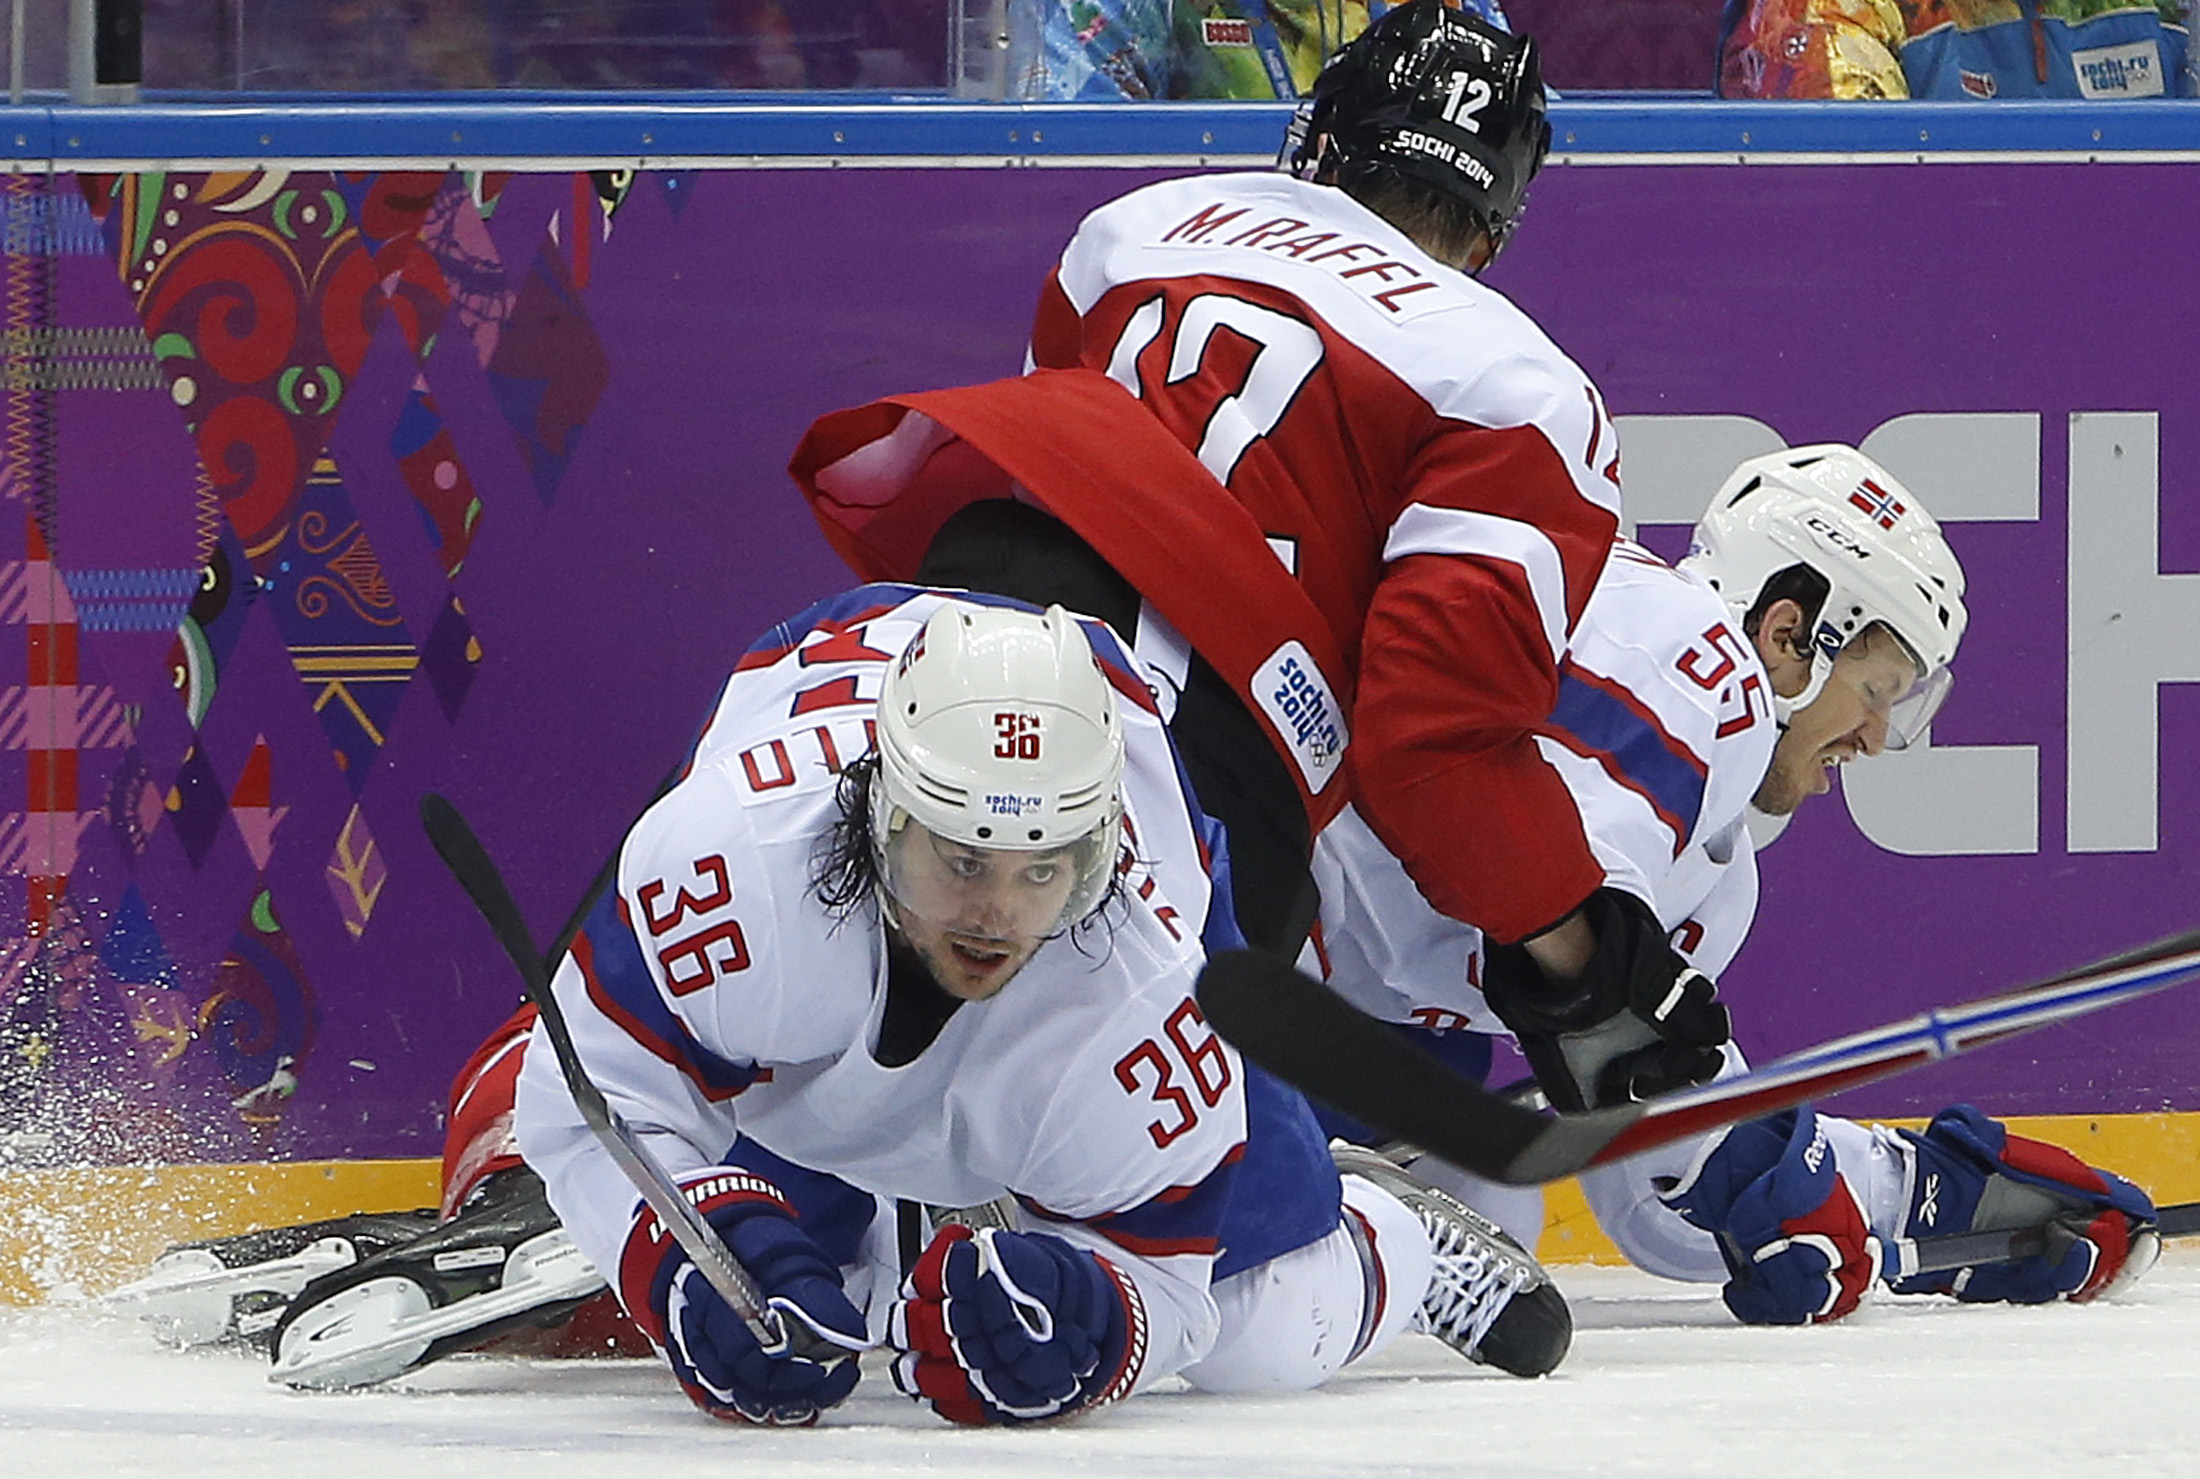 Norway forward Mats Zuccarello gets tangled up with Austria forward Michael Raffl (12) and Norway defenseman Ole-Kristian Tollefsen in the third period of a men's ice hockey game at the 2014 Winter Olympics, Sunday, Feb. 16, 2014, in Sochi, Russia. (AP Photo/Mark Humphrey)